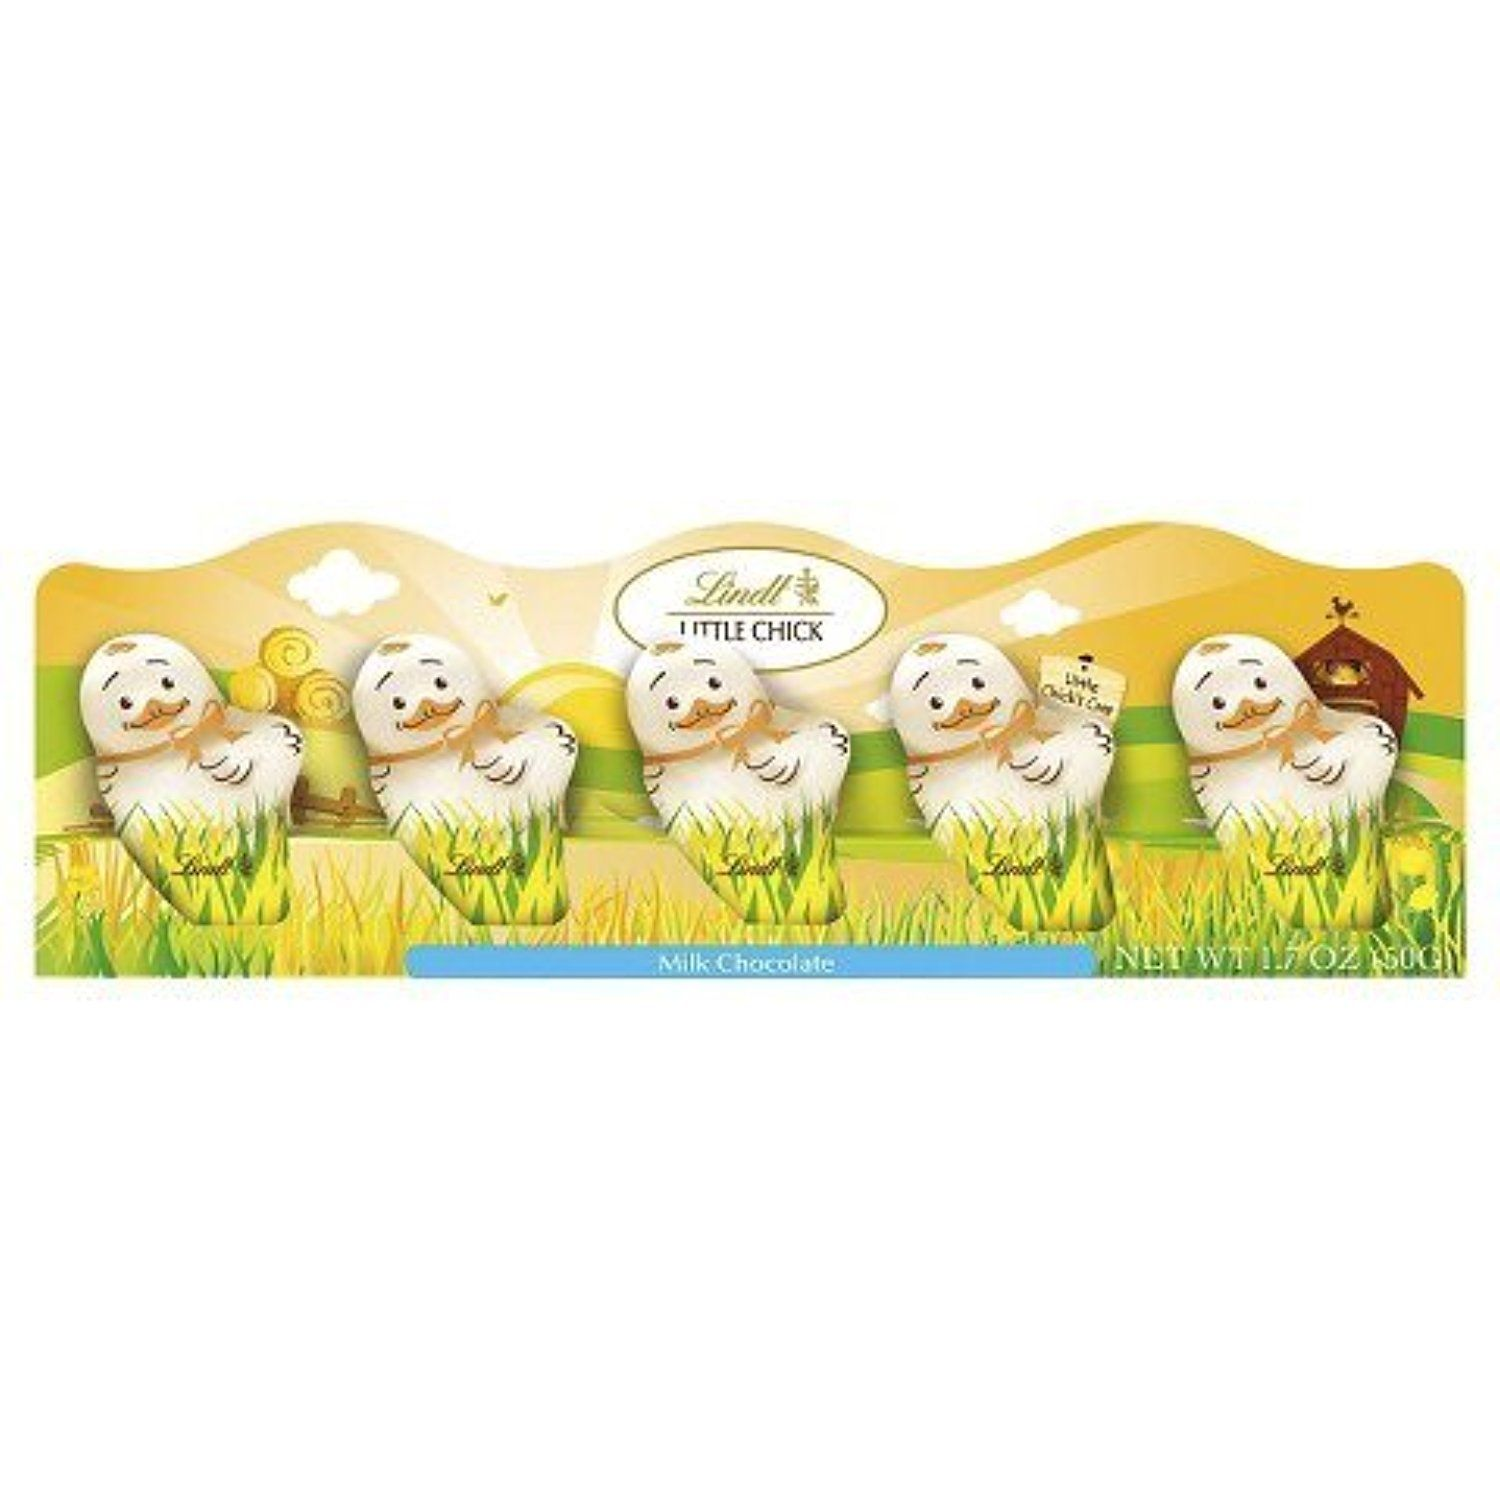 Lindt little chicks 5 piece by Lindt -- Awesome products selected by Anna Churchill